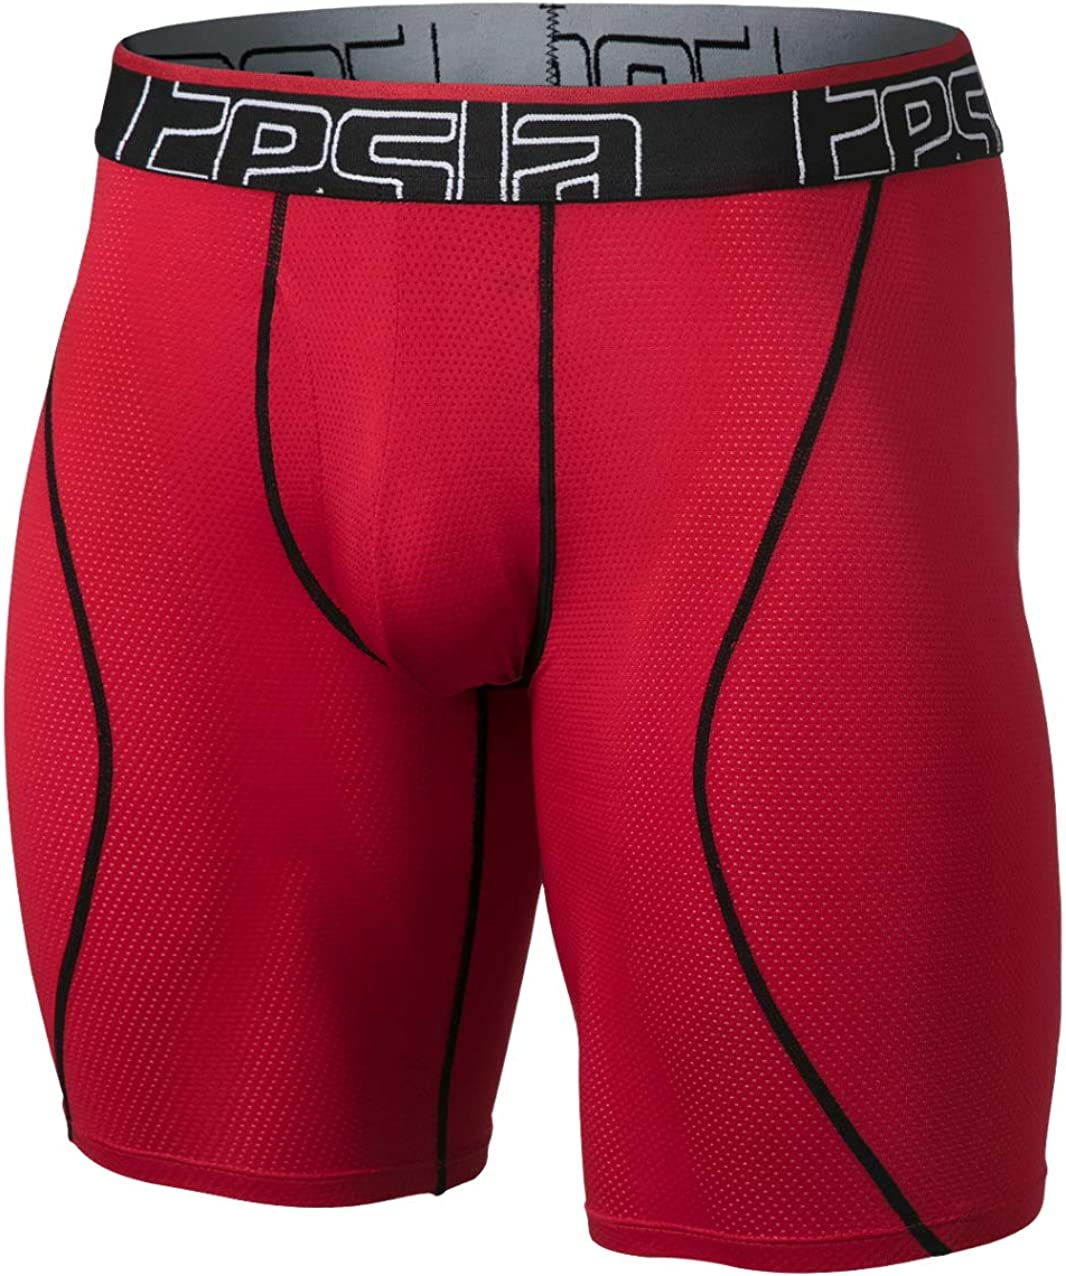 TSLA 2 Pack Men's Relaxed Stretch Cool Dry Performance Brief Mesh Underwear Trunk: Clothing